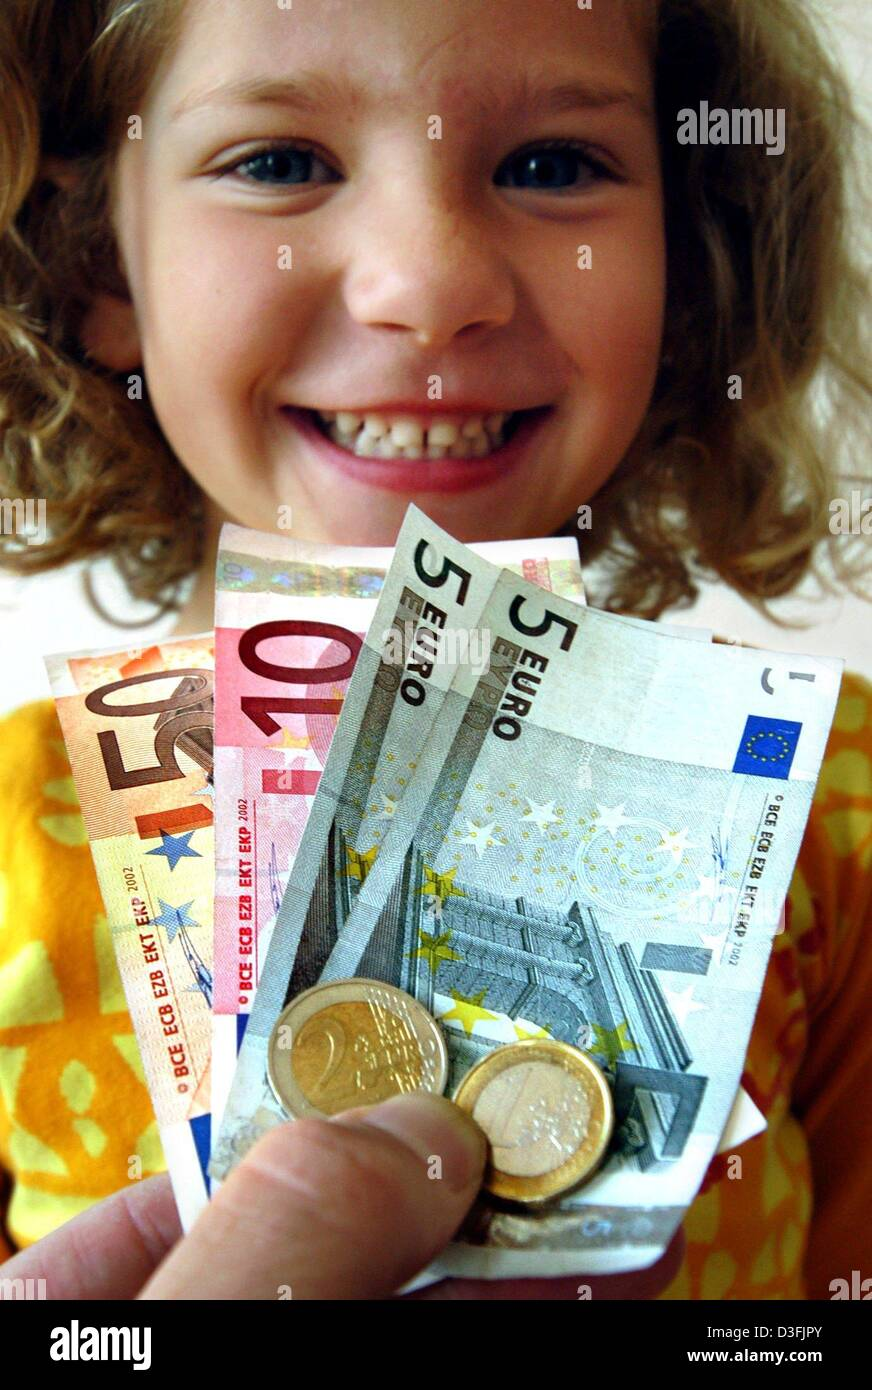 (dpa) - A symbolic picture shows a young girl smiling as she is handed over 73 euros, Hamburg, Germany, 9 July 2003. - Stock Image